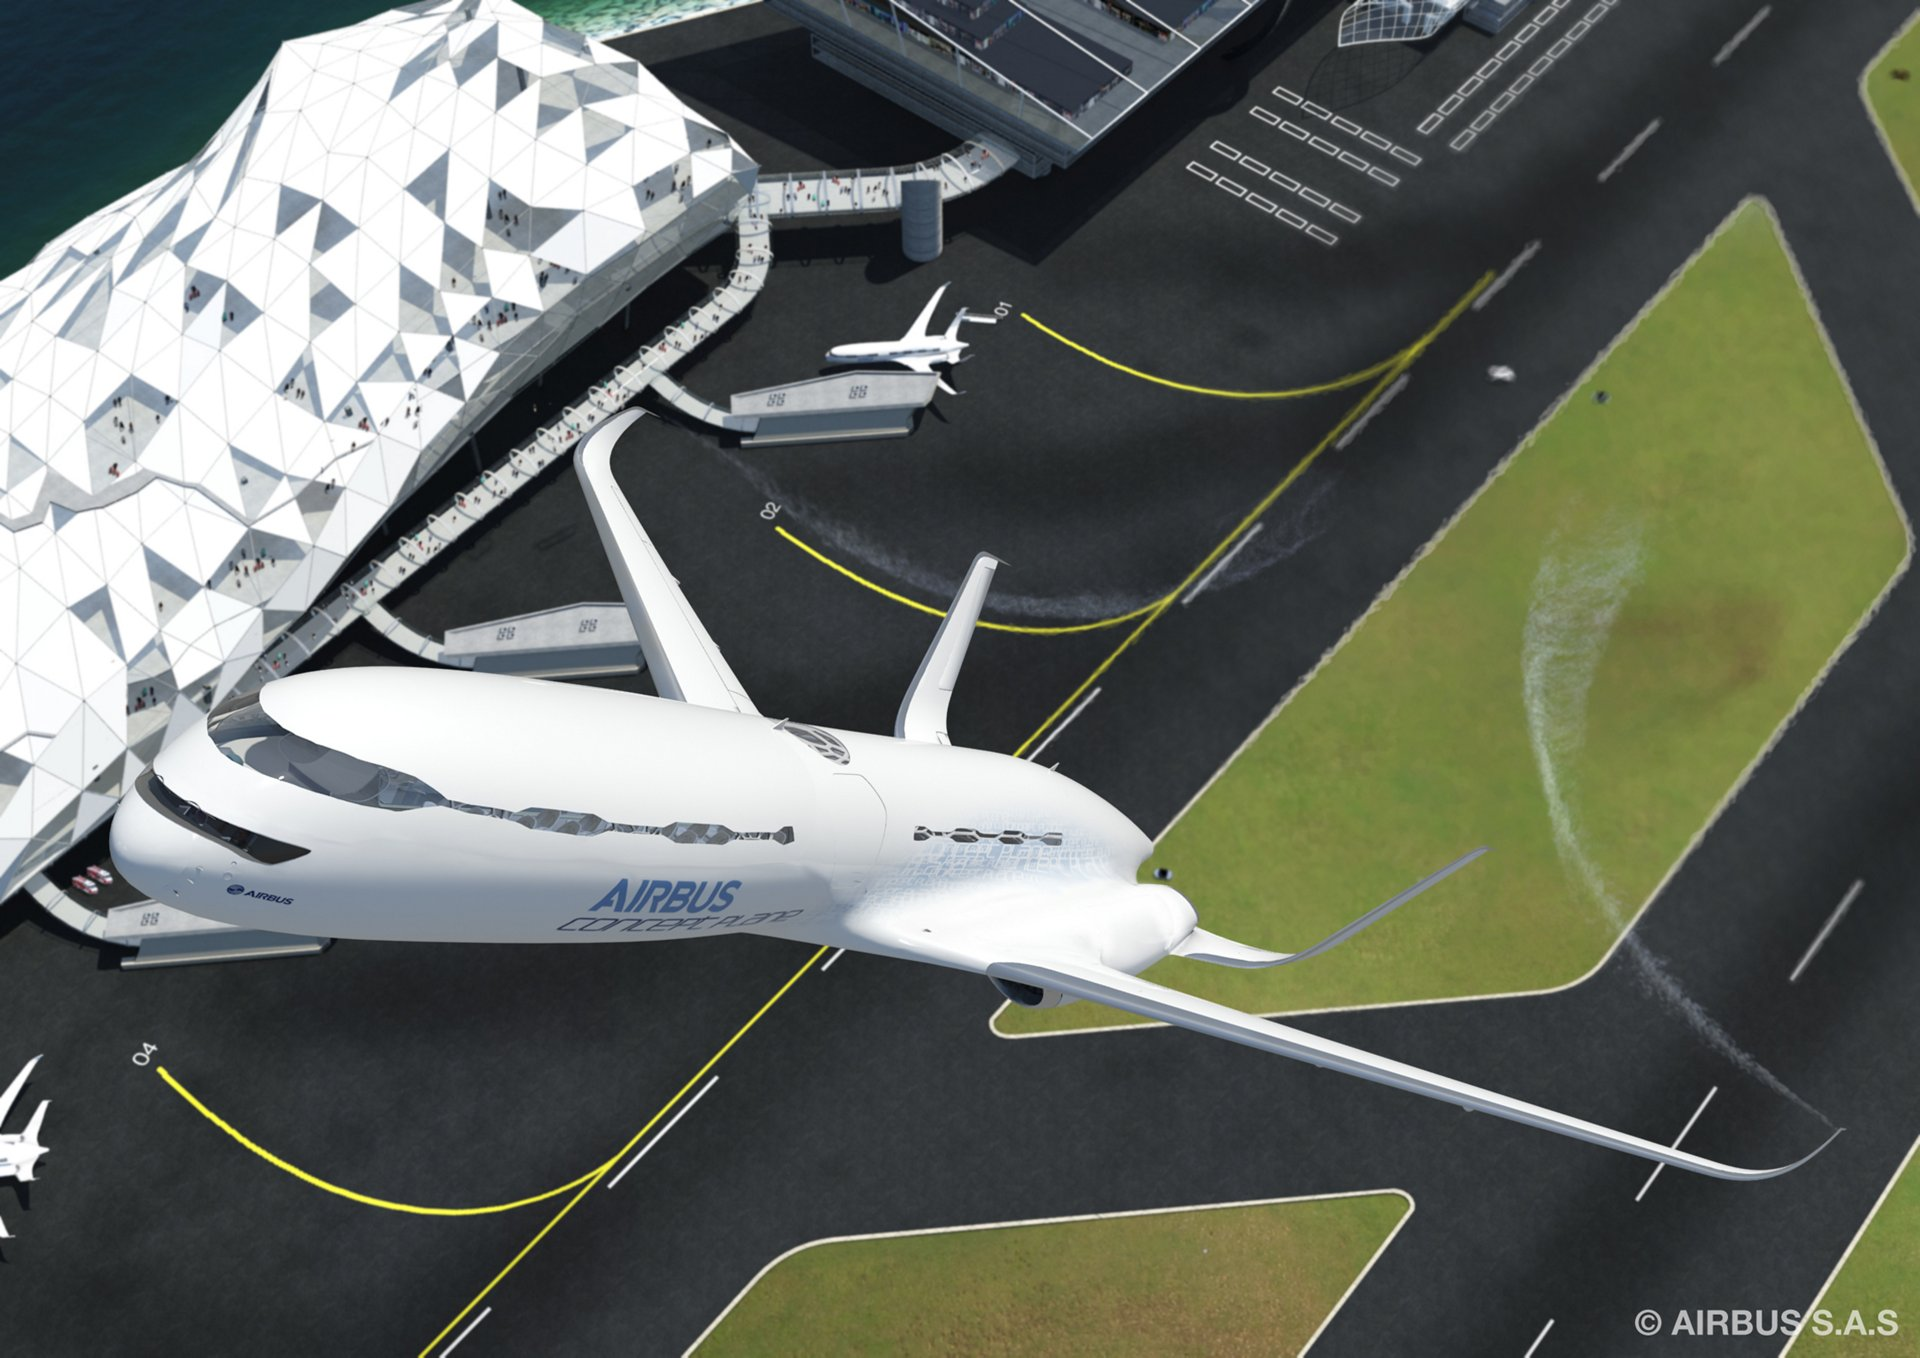 1c. Aircraft take-off in continuous eco-climb